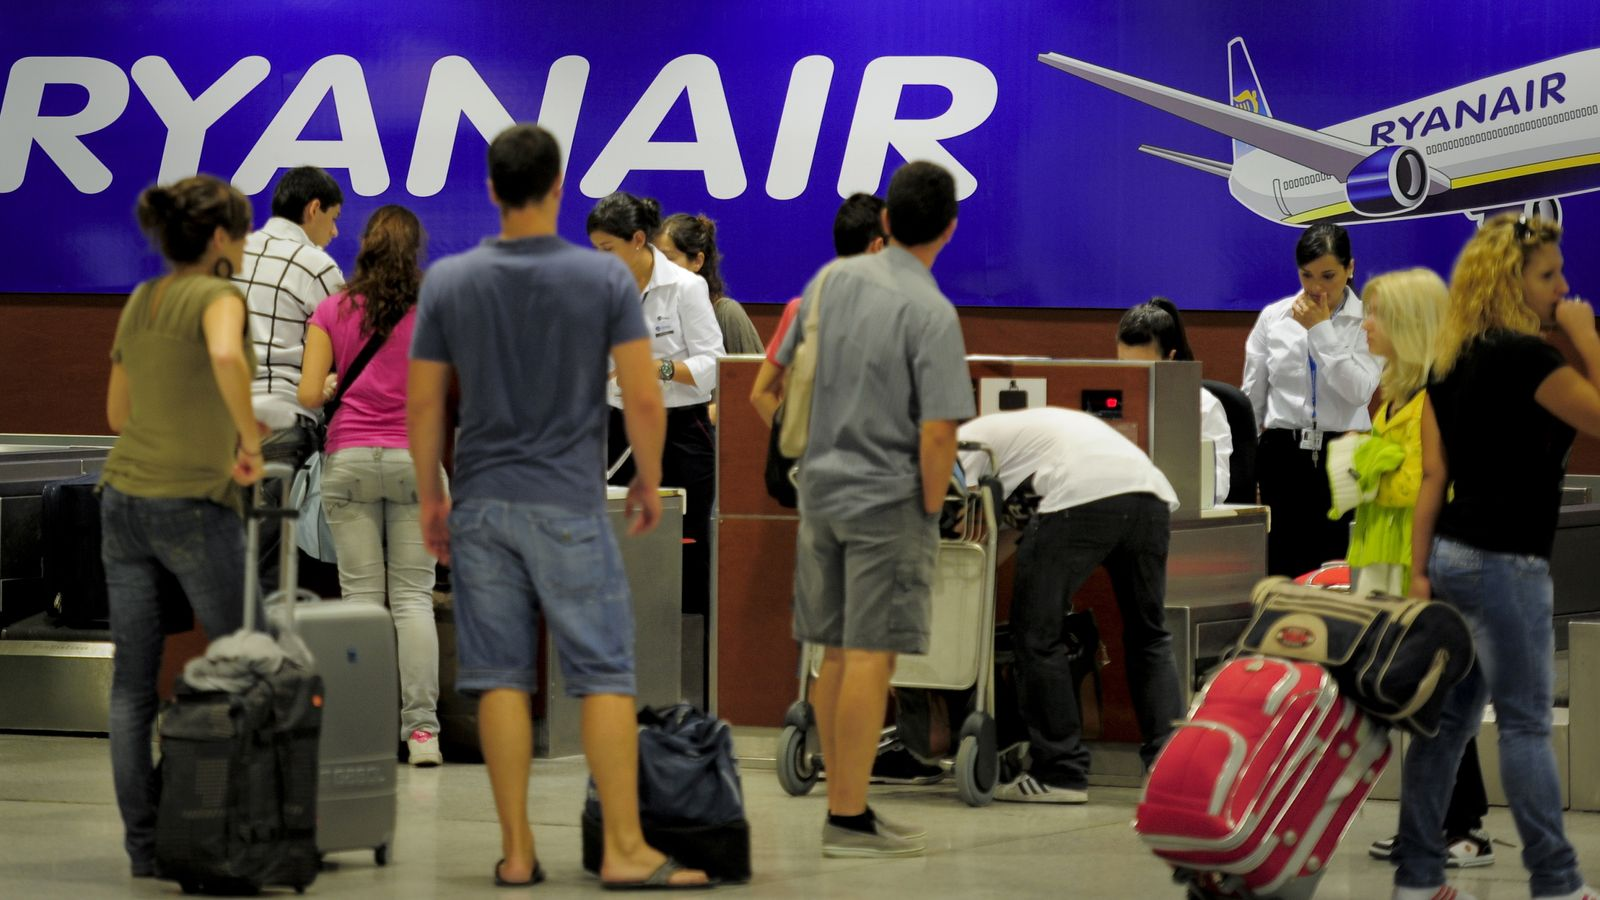 Italy challenges Ryanair charge on 'essential' hand luggage